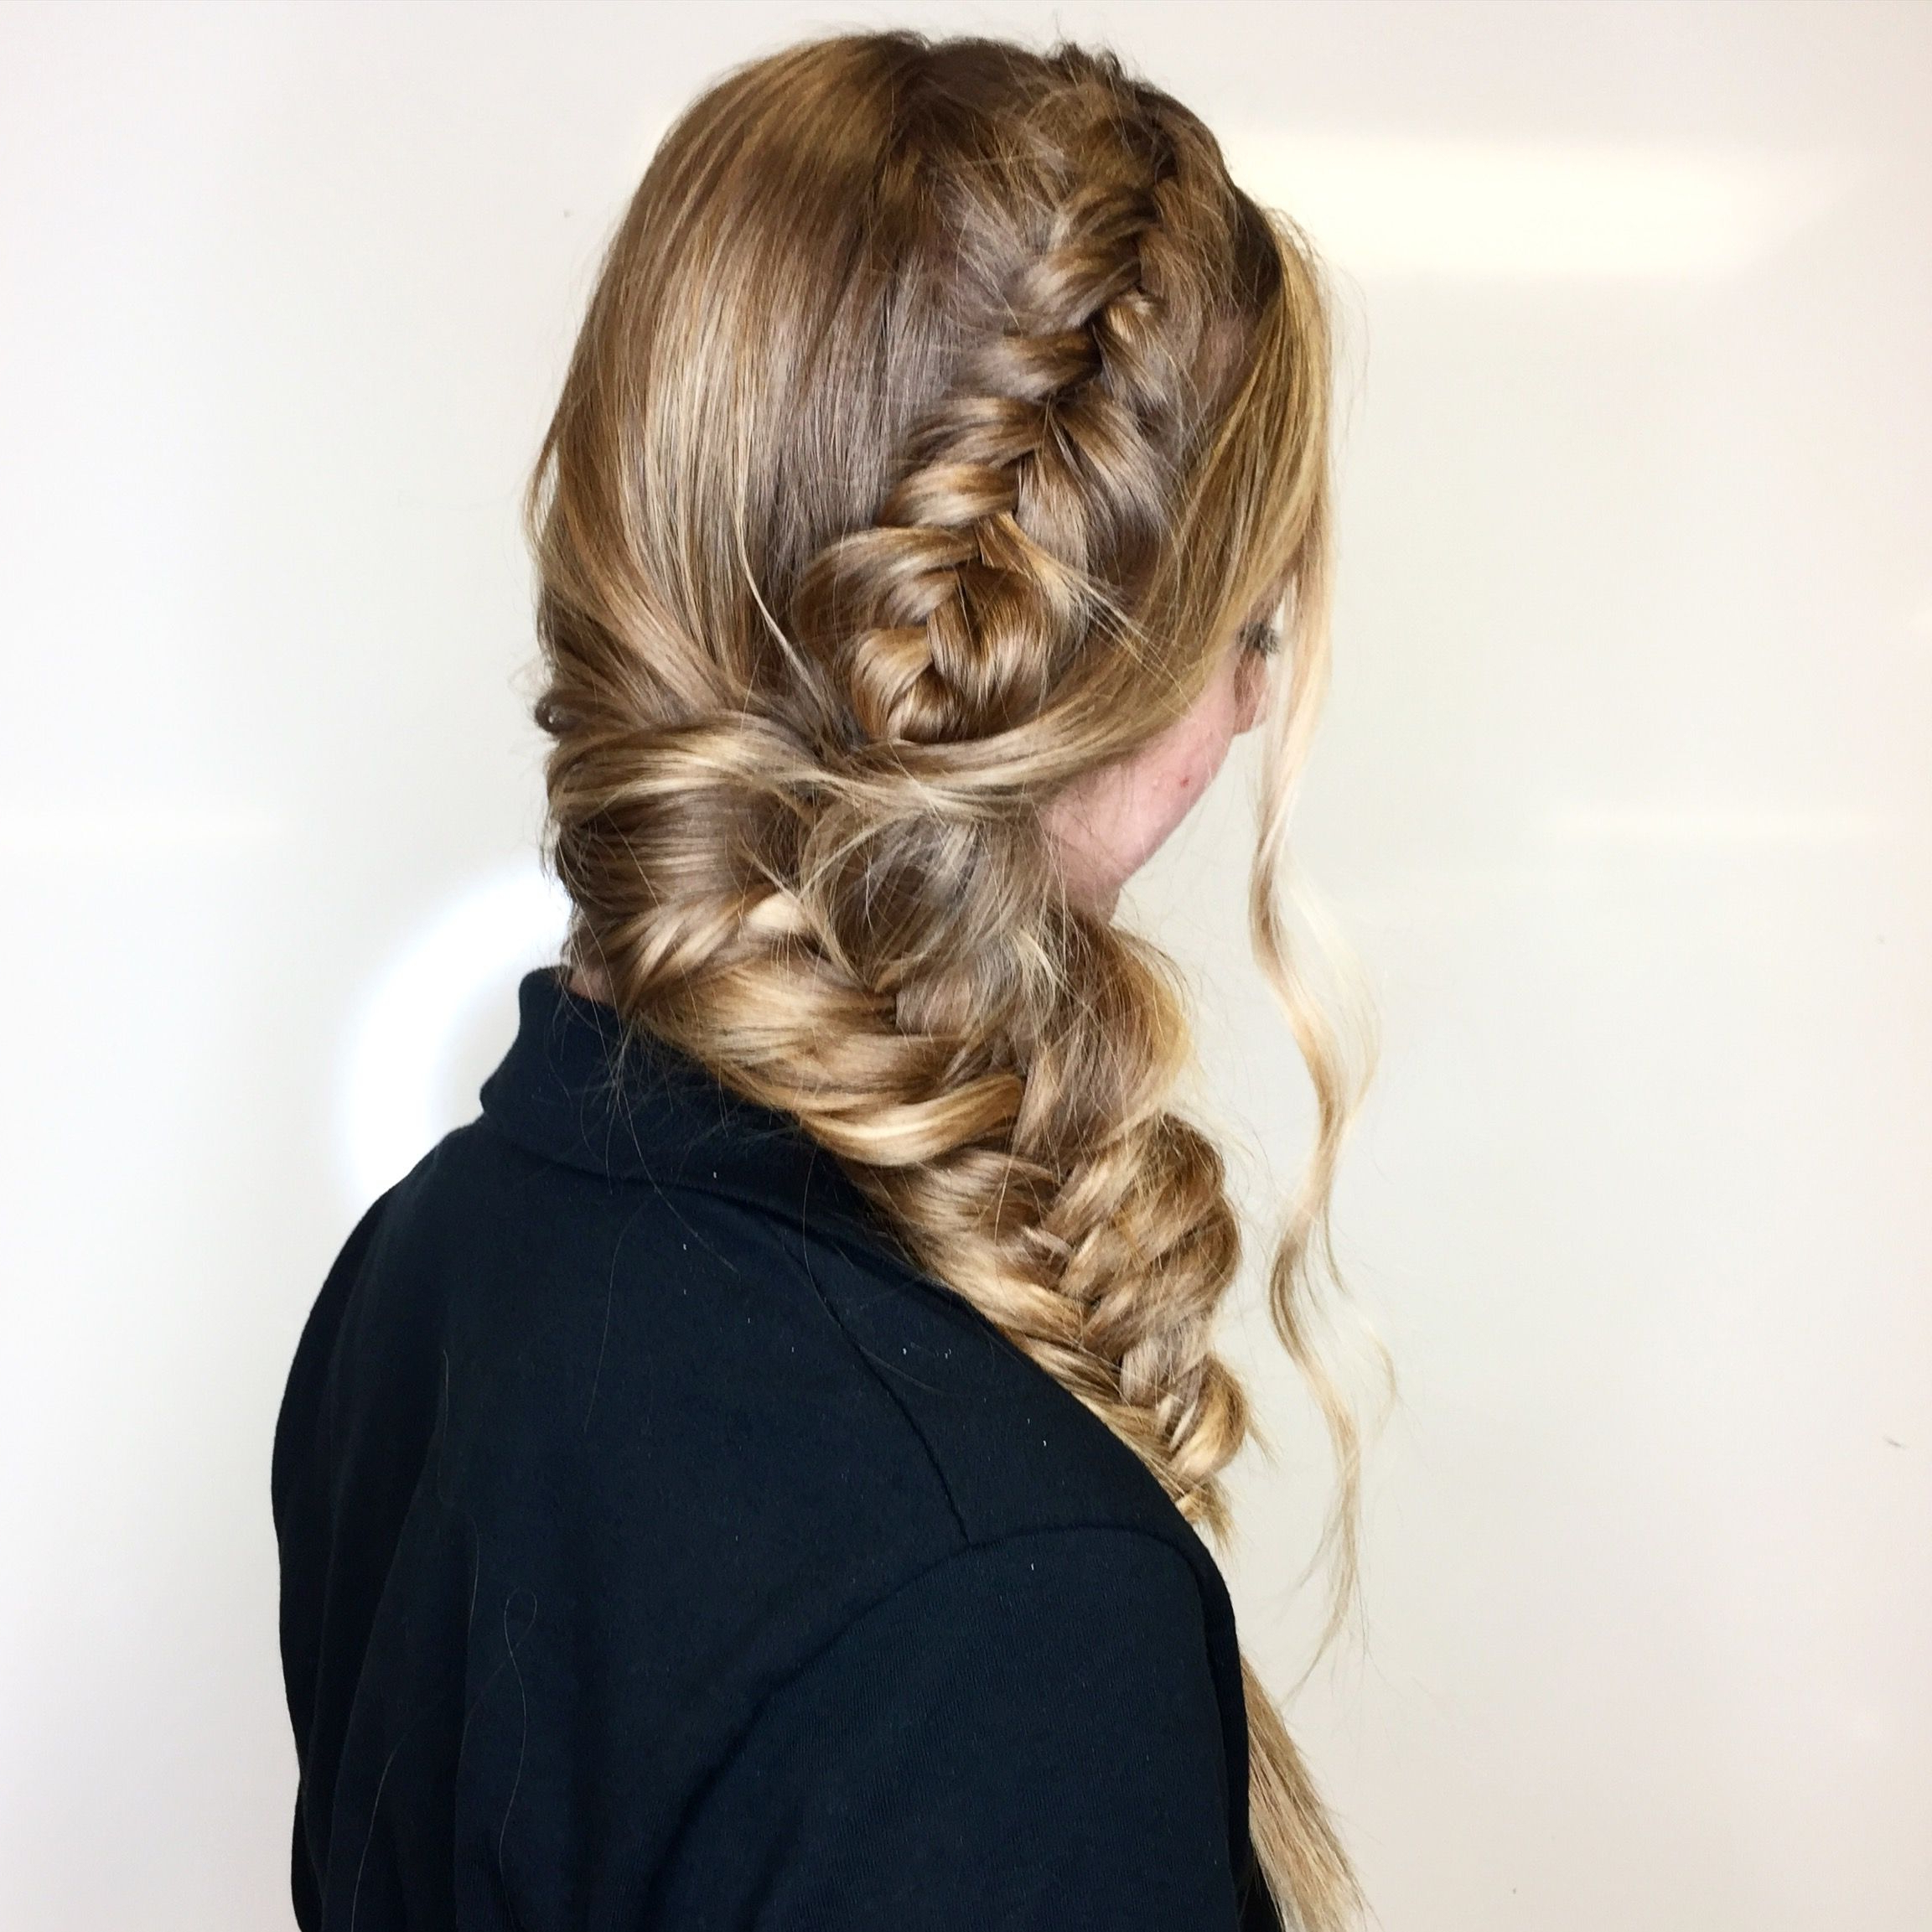 Most Current Fishtail Side Braid Hairstyles For Dutch Fishtail Side Braid Hairstyle ✨ (View 12 of 20)